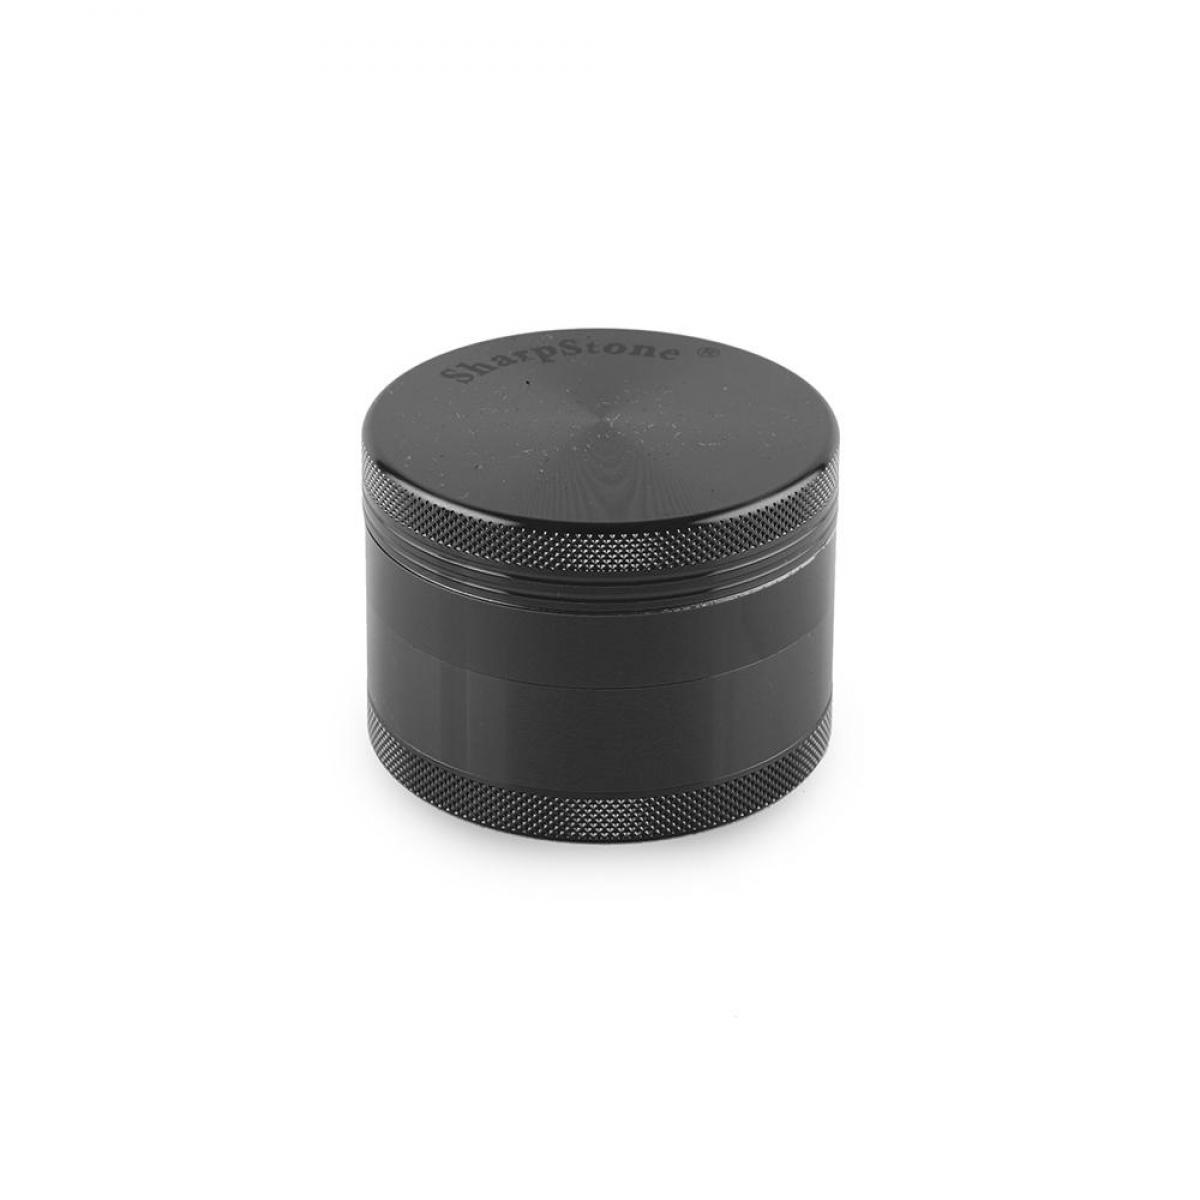 Sharpstone Grinder - 2.5 inch 4pc